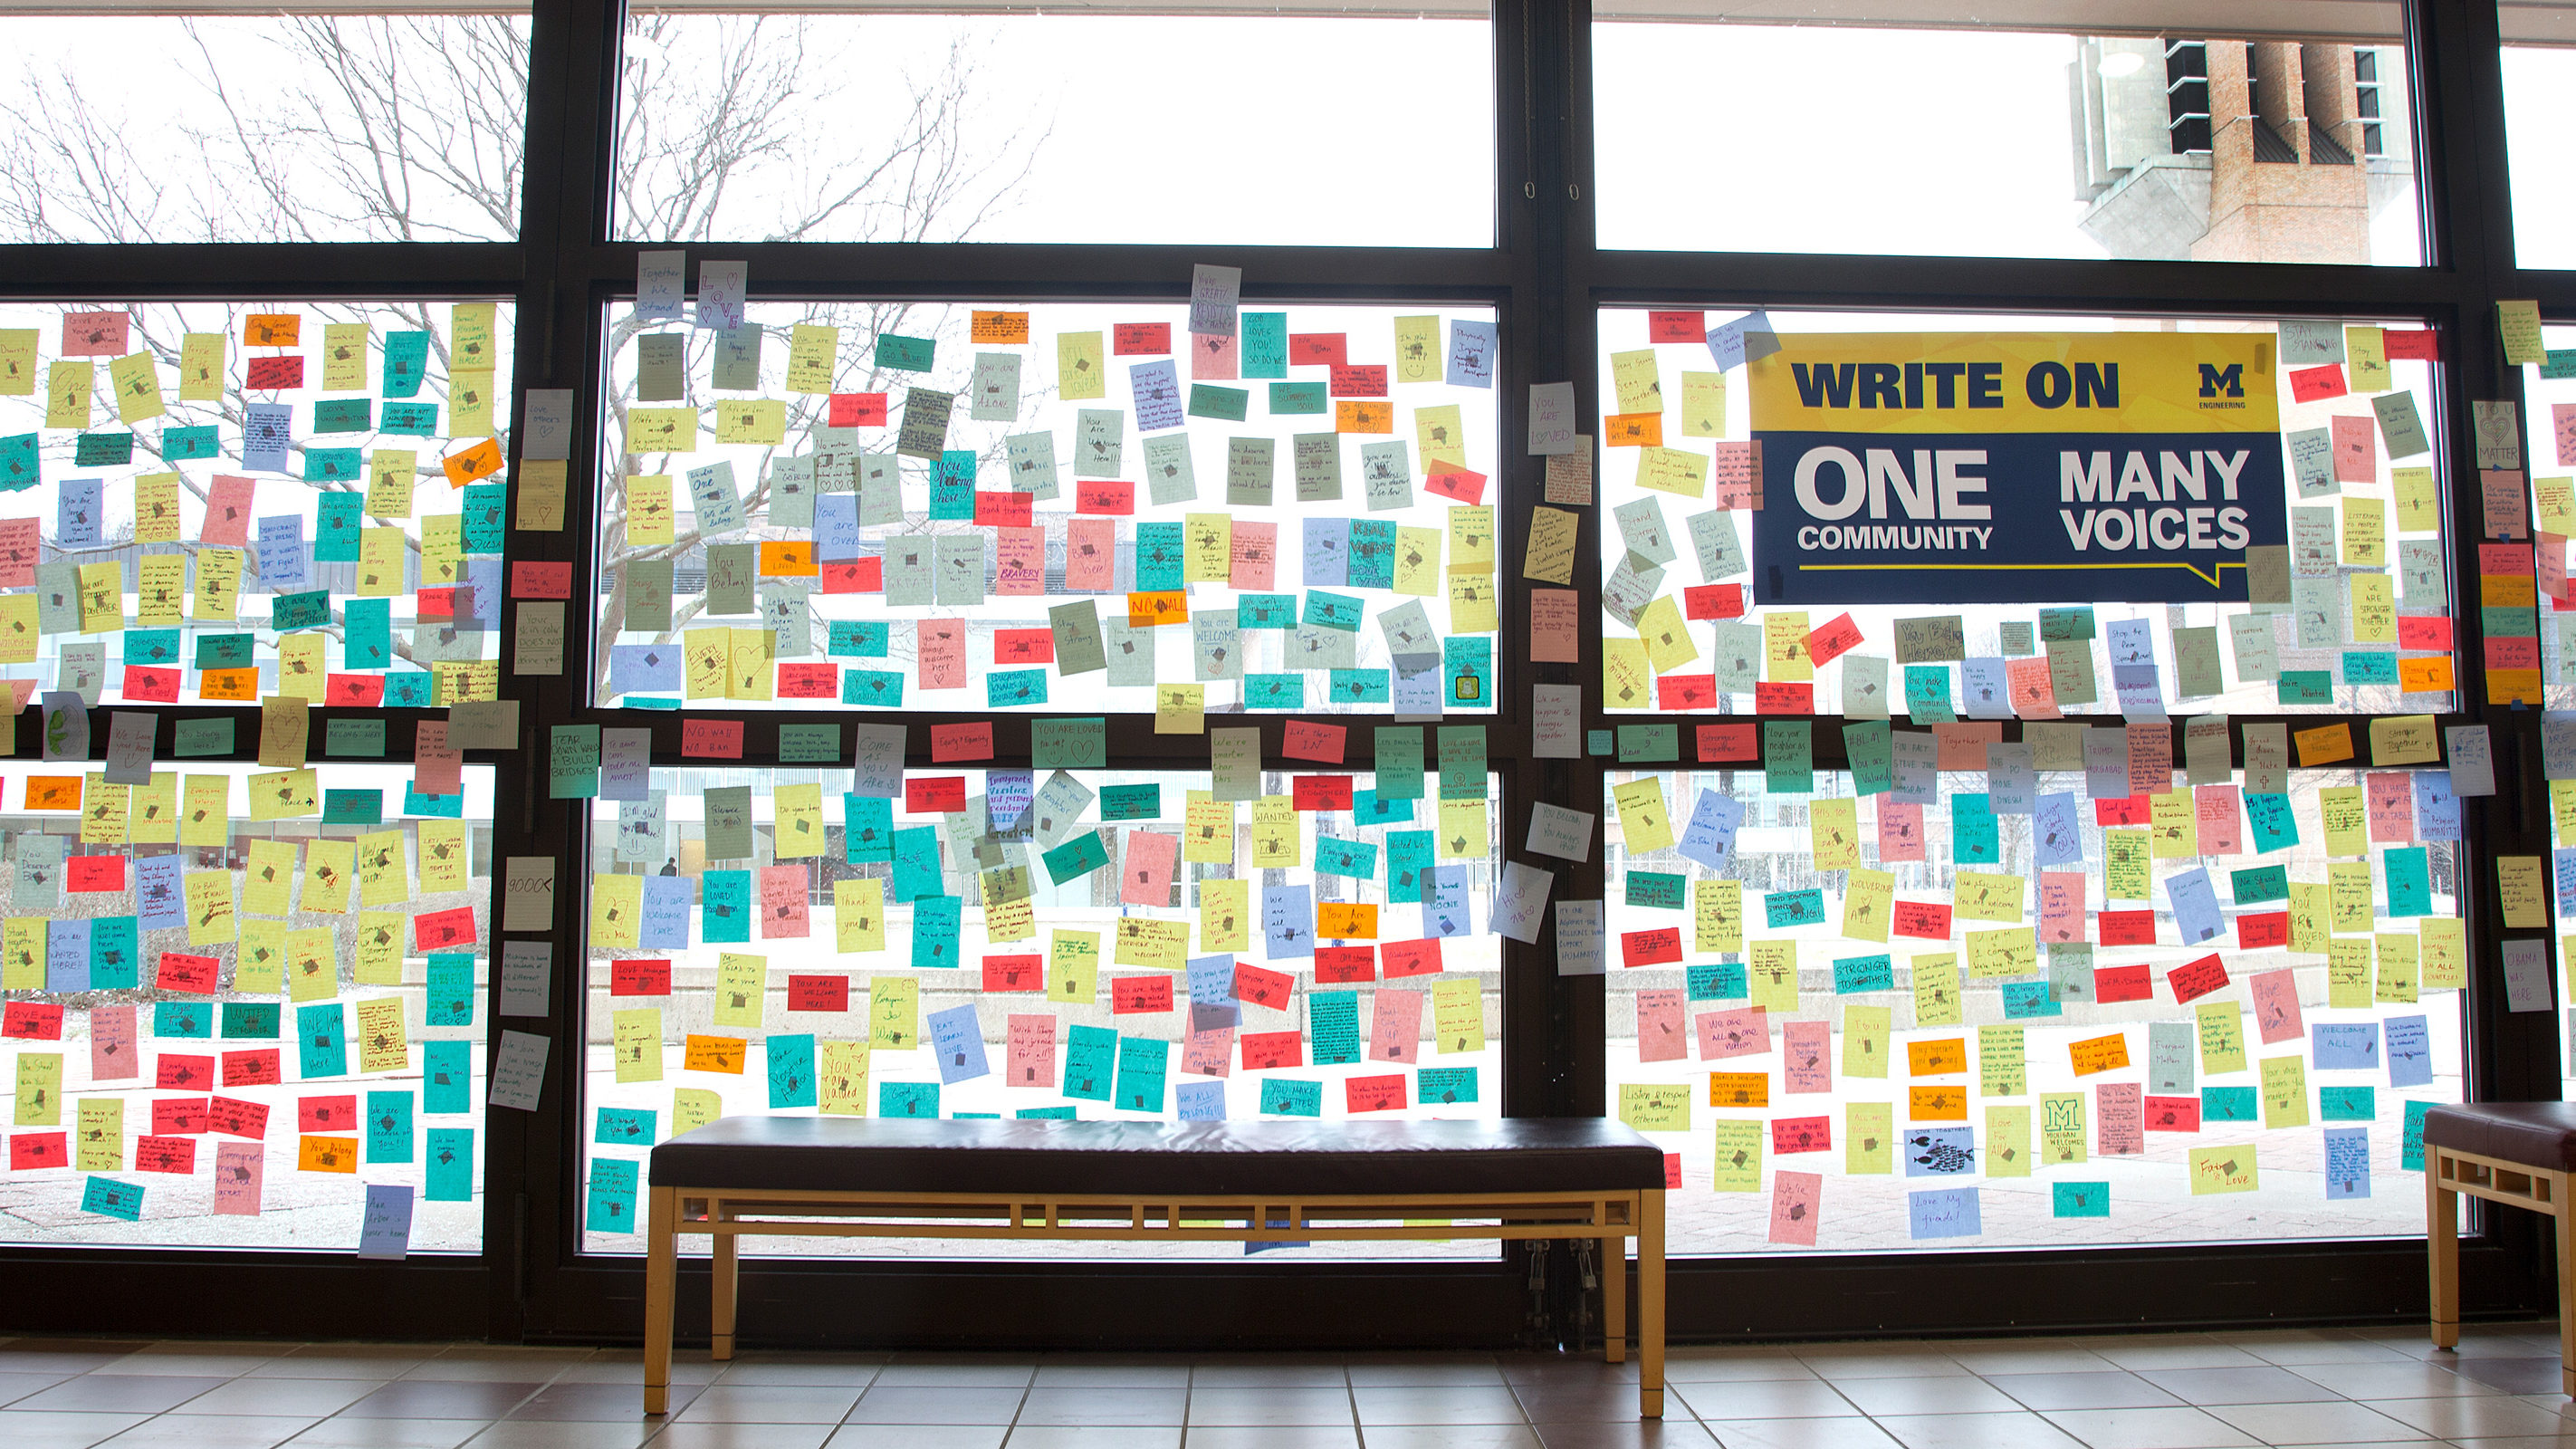 University of Michigan students, staff and faculty members participate in writing messages of inclusion and openness in support of Michigan Engineering international students, faculty and staff.